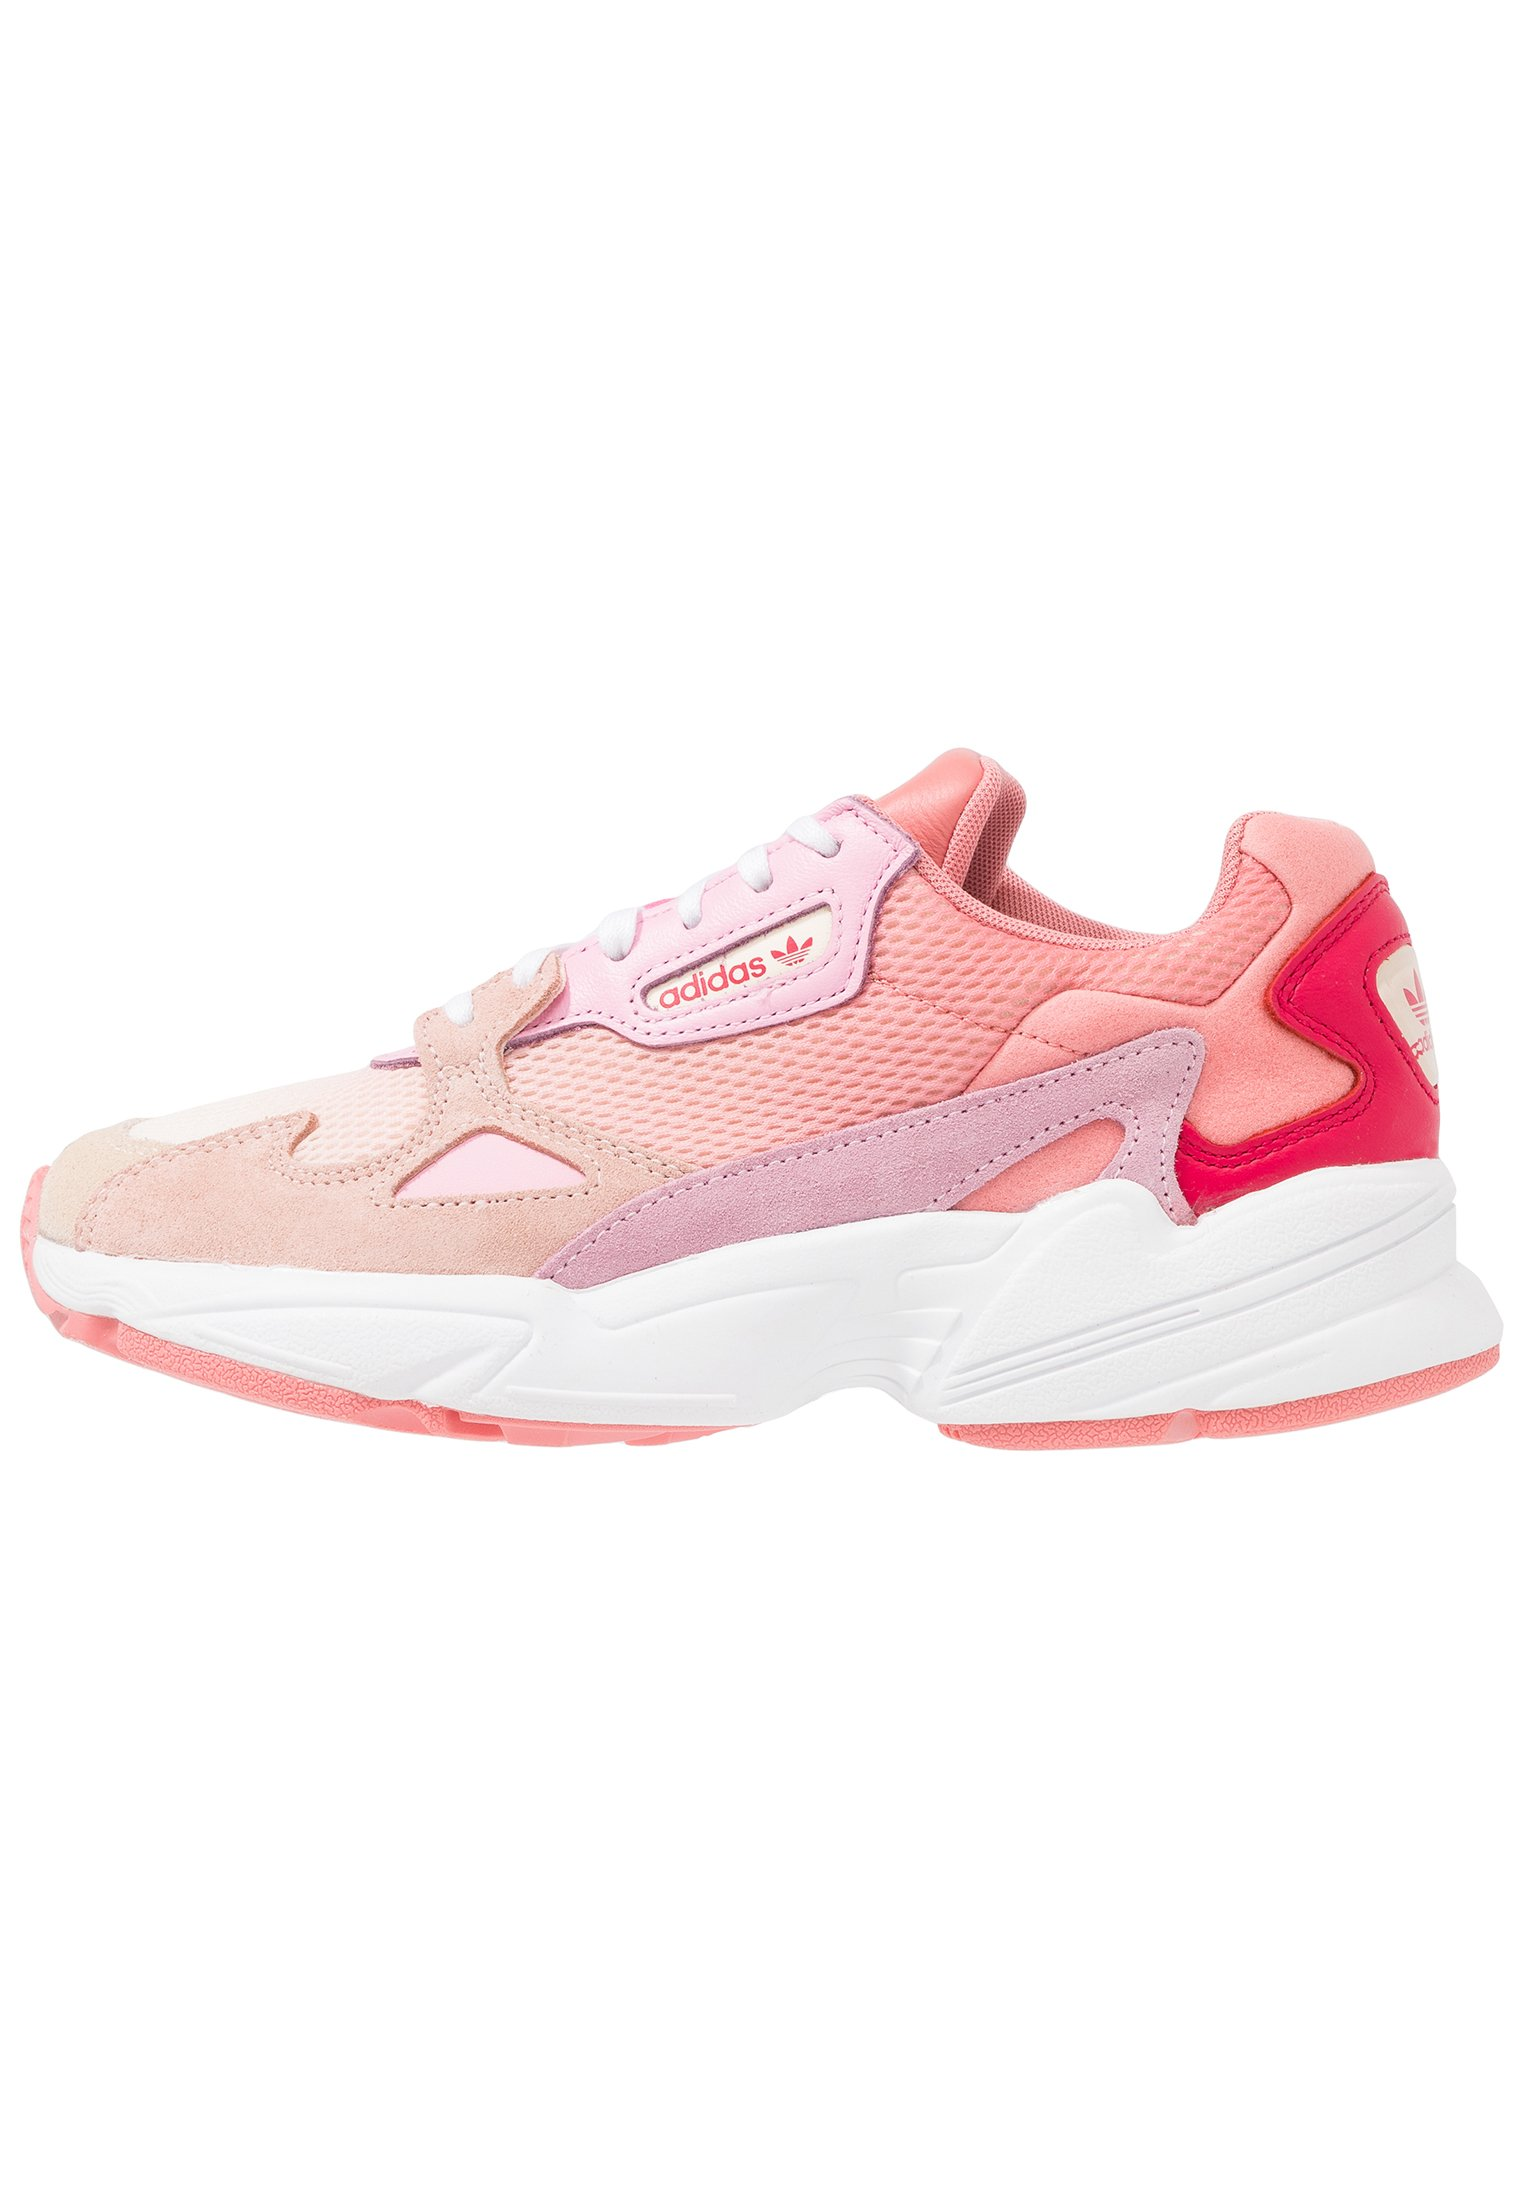 adidas Originals FALCON - Sneakers basse - ecru tint/ice pink/true pink